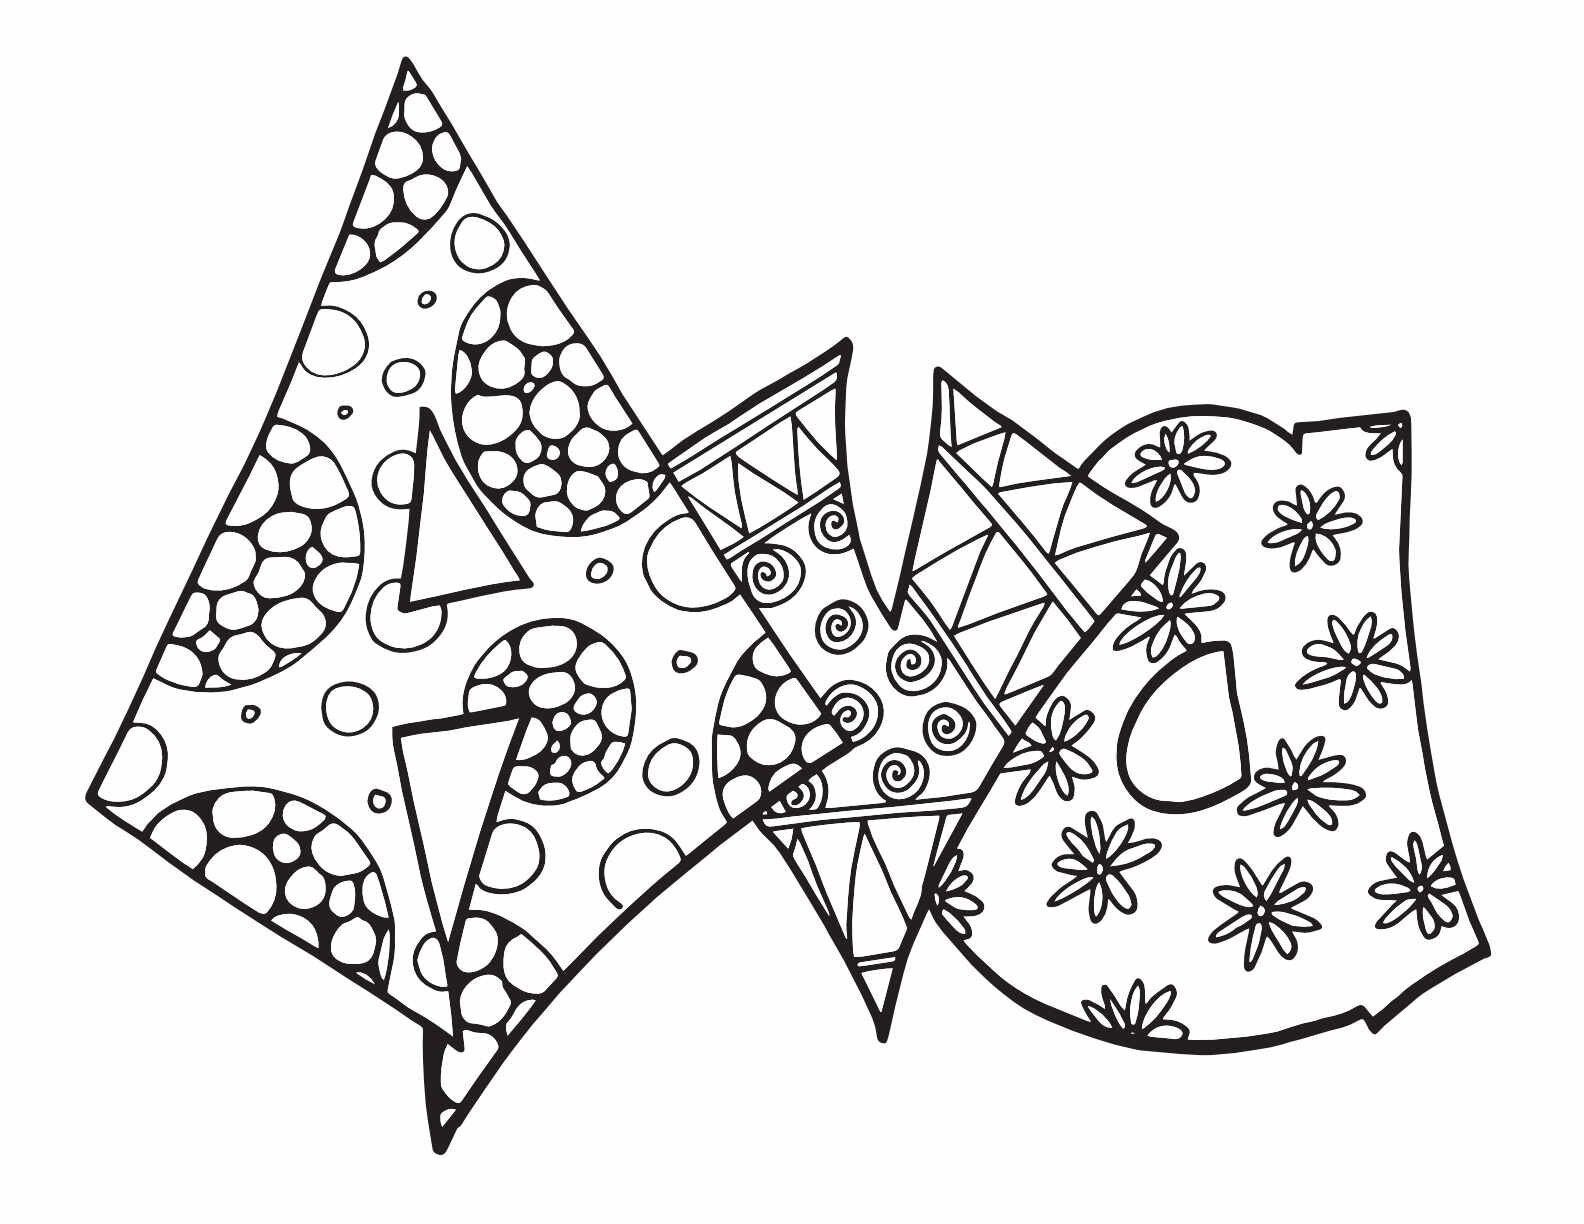 Ava Free Printable Coloring Page Stevie Doodles Free Printable Coloring Pages Printable Coloring Pages Free Printable Coloring